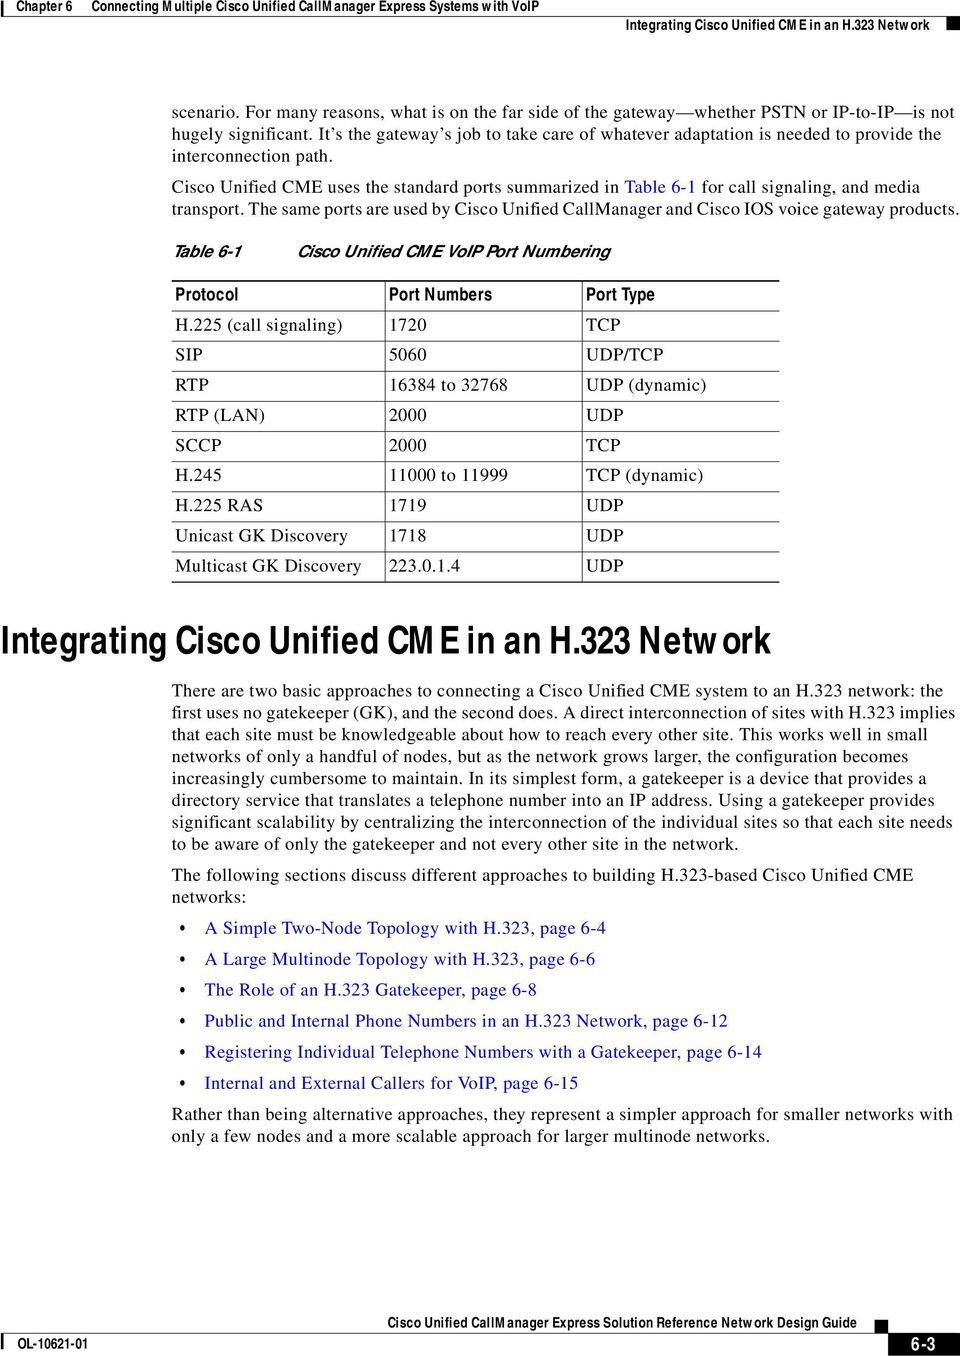 Cisco Unified CME uses the standard ports summarized in Table 6-1 for call signaling, and media transport. The same ports are used by Cisco Unified CallManager and Cisco IOS voice gateway products.